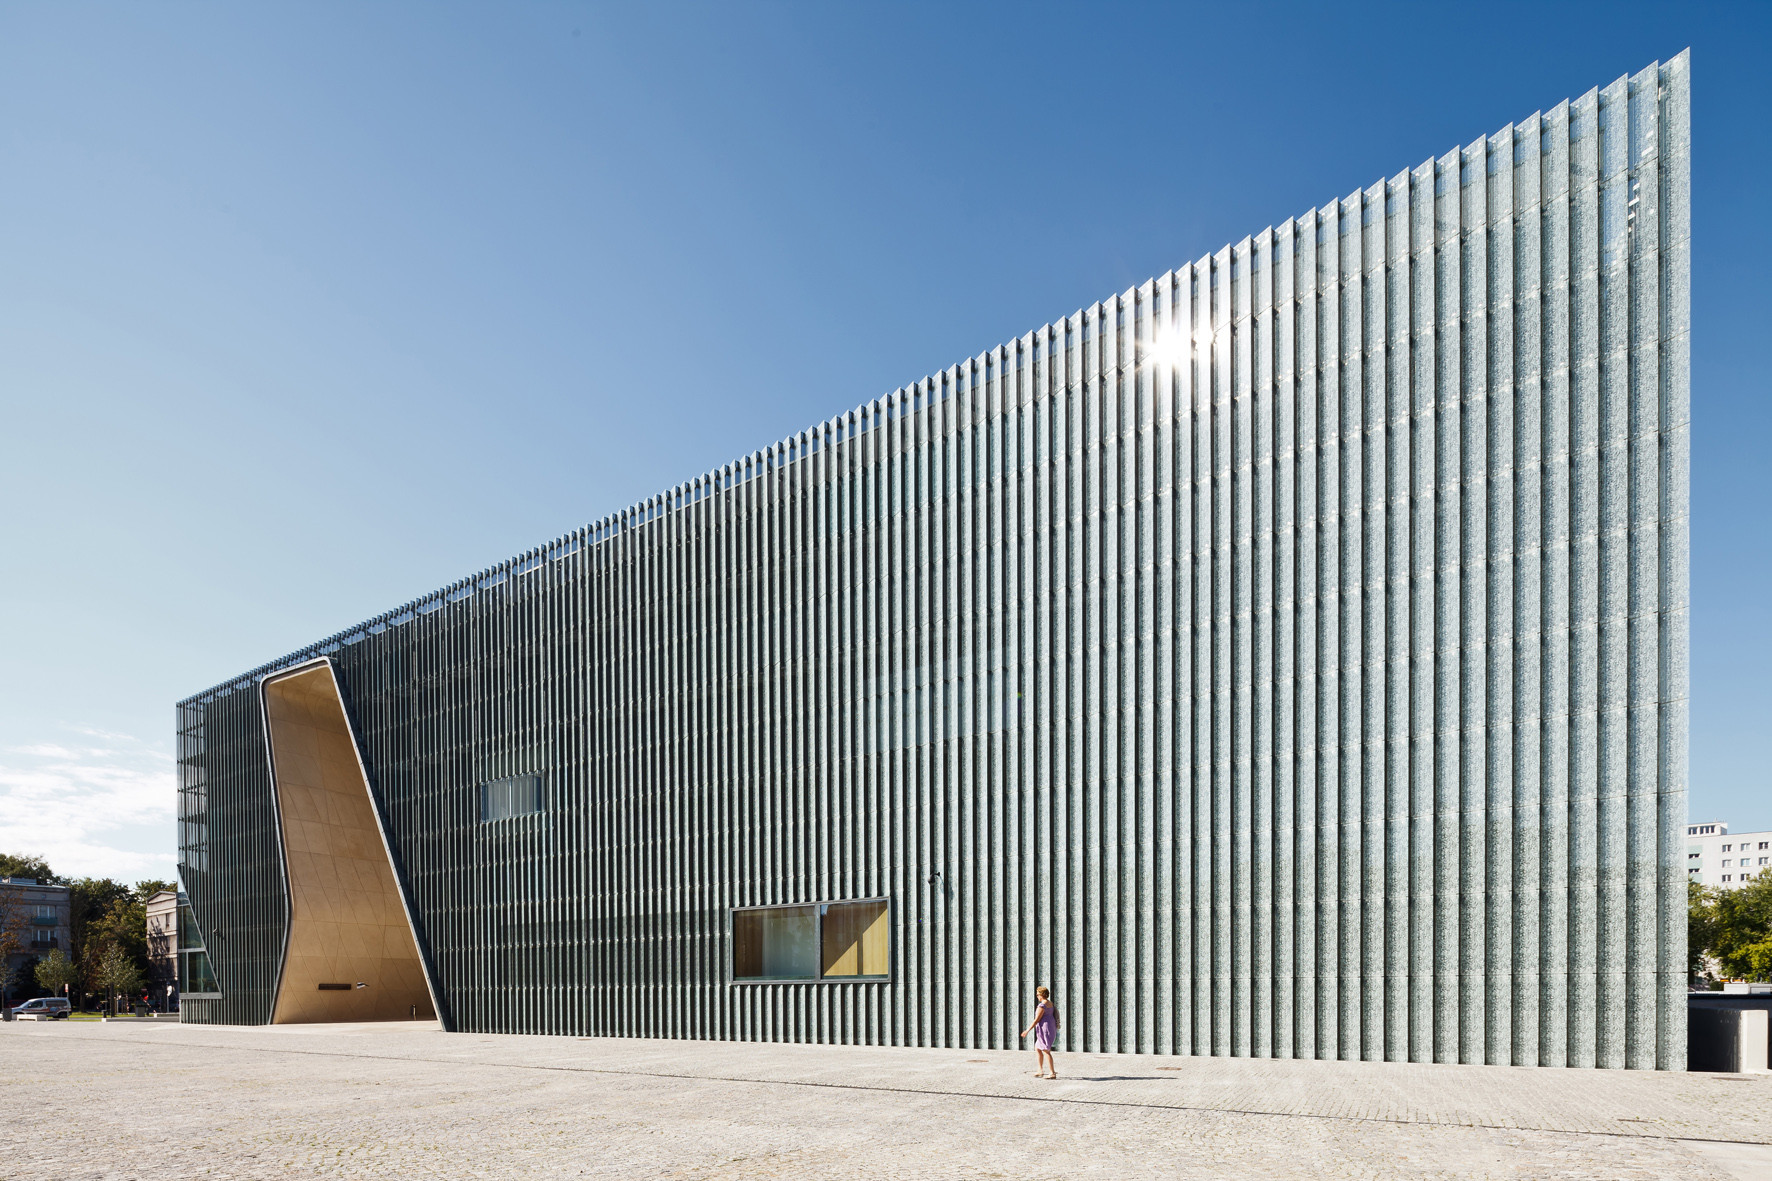 Museum Of The History Of Polish Jews. Image © Pawel Paniczko